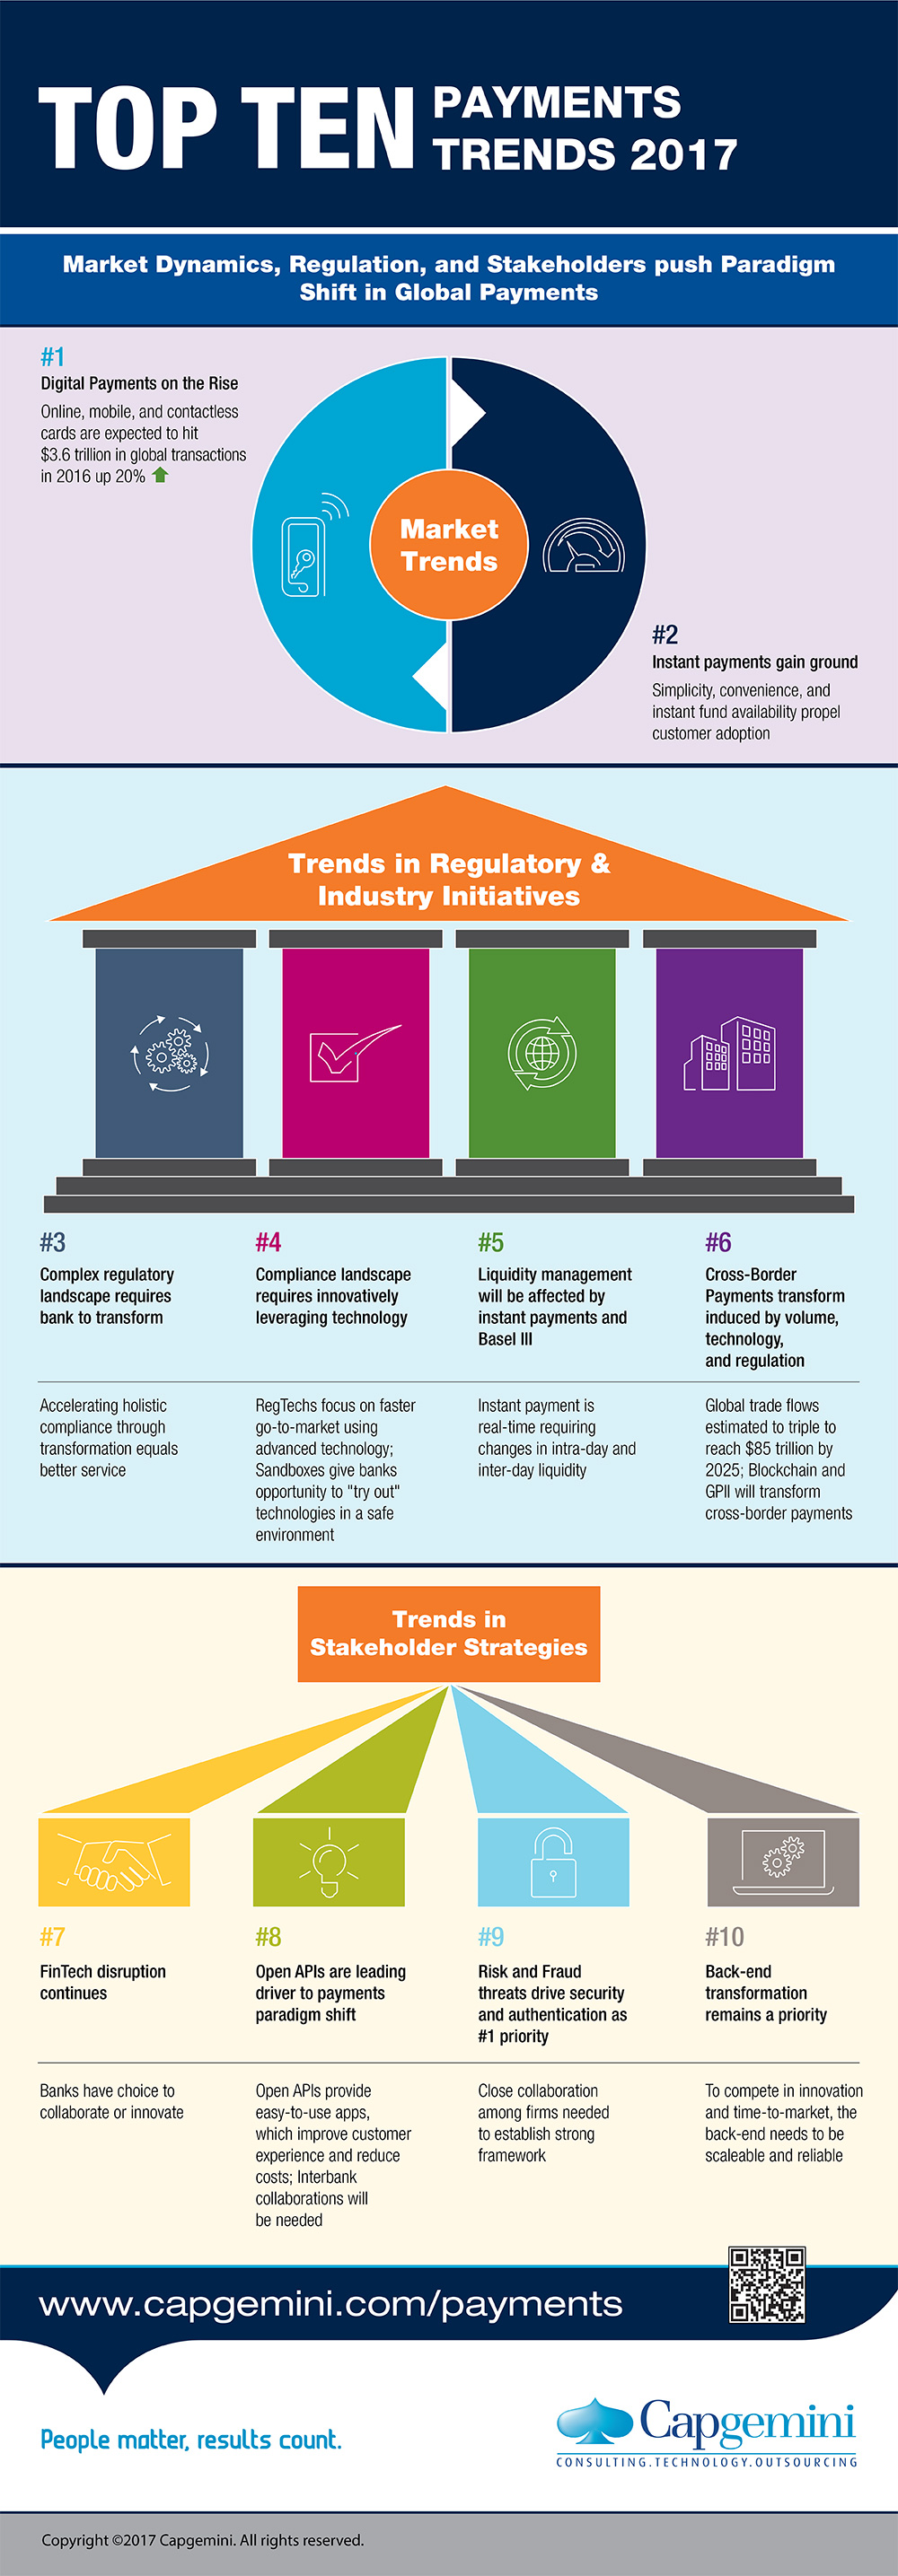 Payments Trends 2017 Infographic Capgemini Worldwide